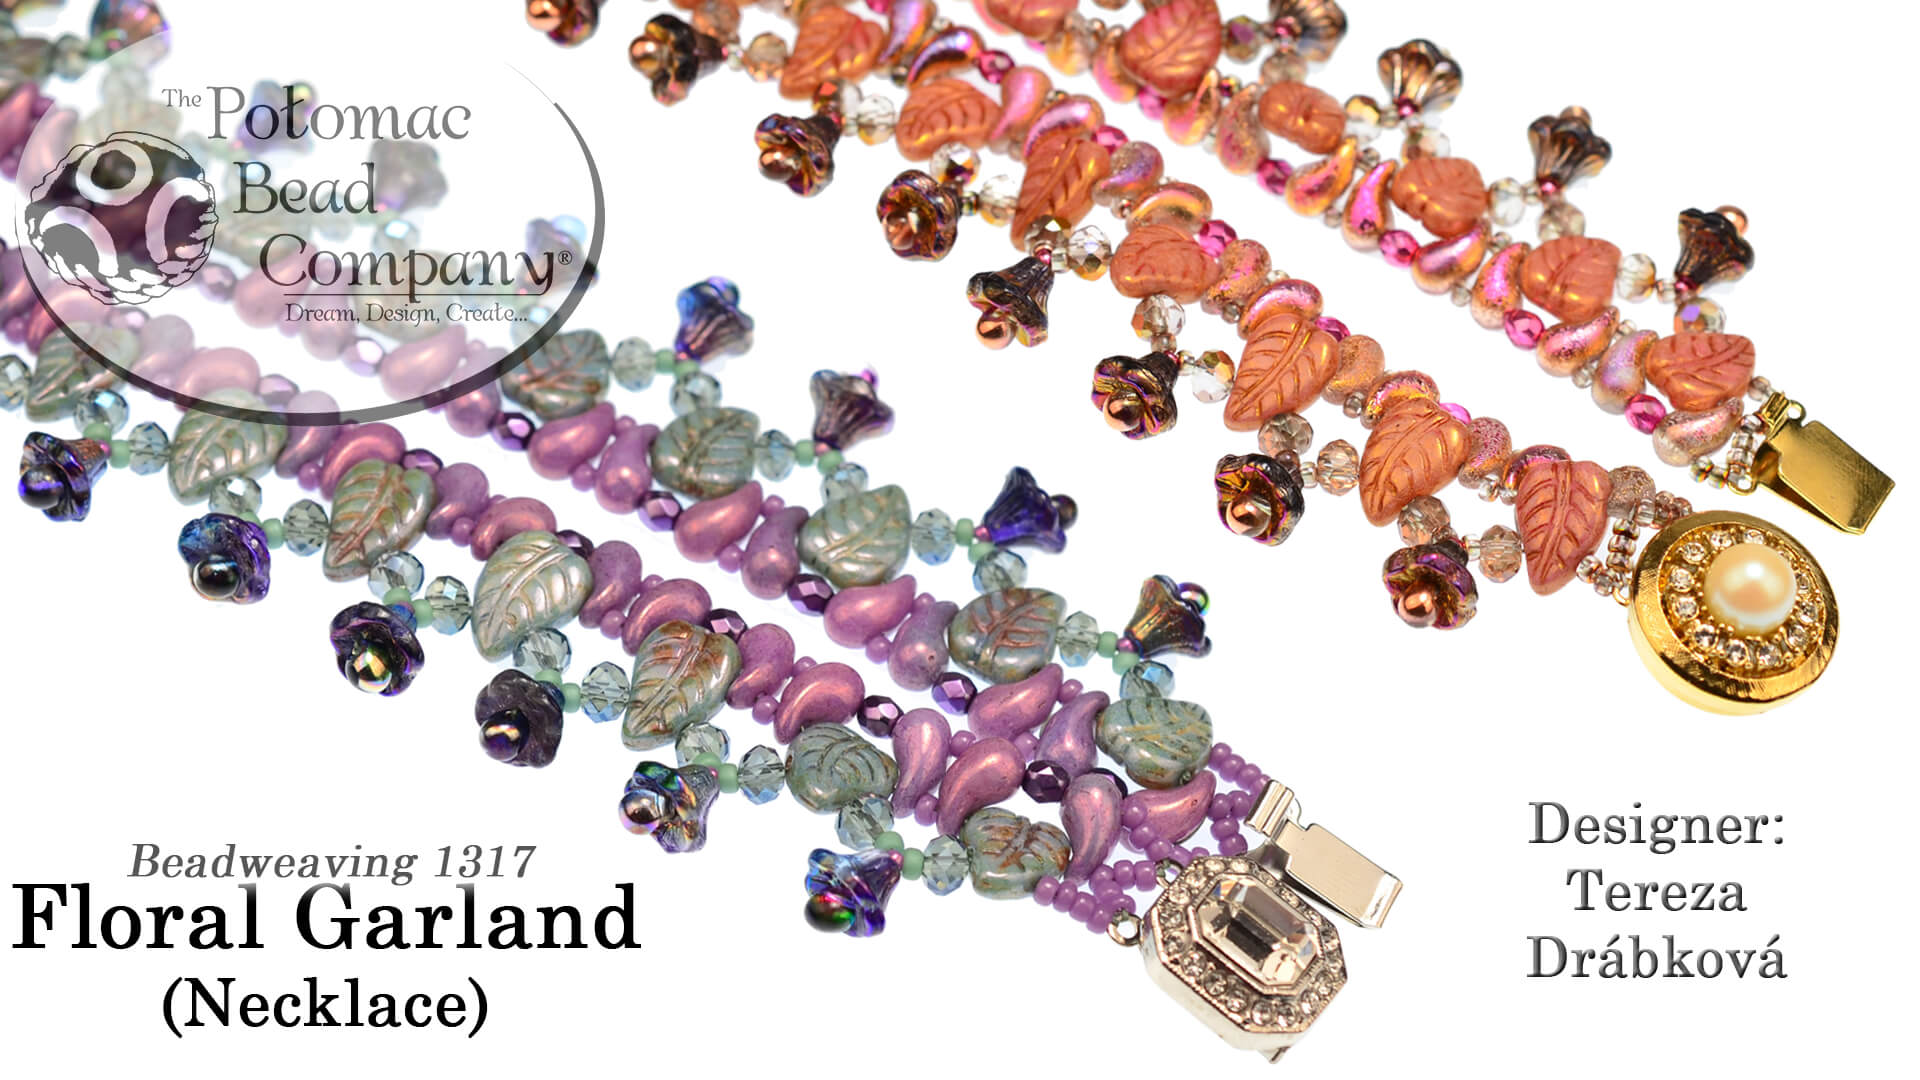 How to Bead Jewelry / Videos Sorted by Beads / Potomac Crystal Videos / Floral Garland Necklace Tutorial